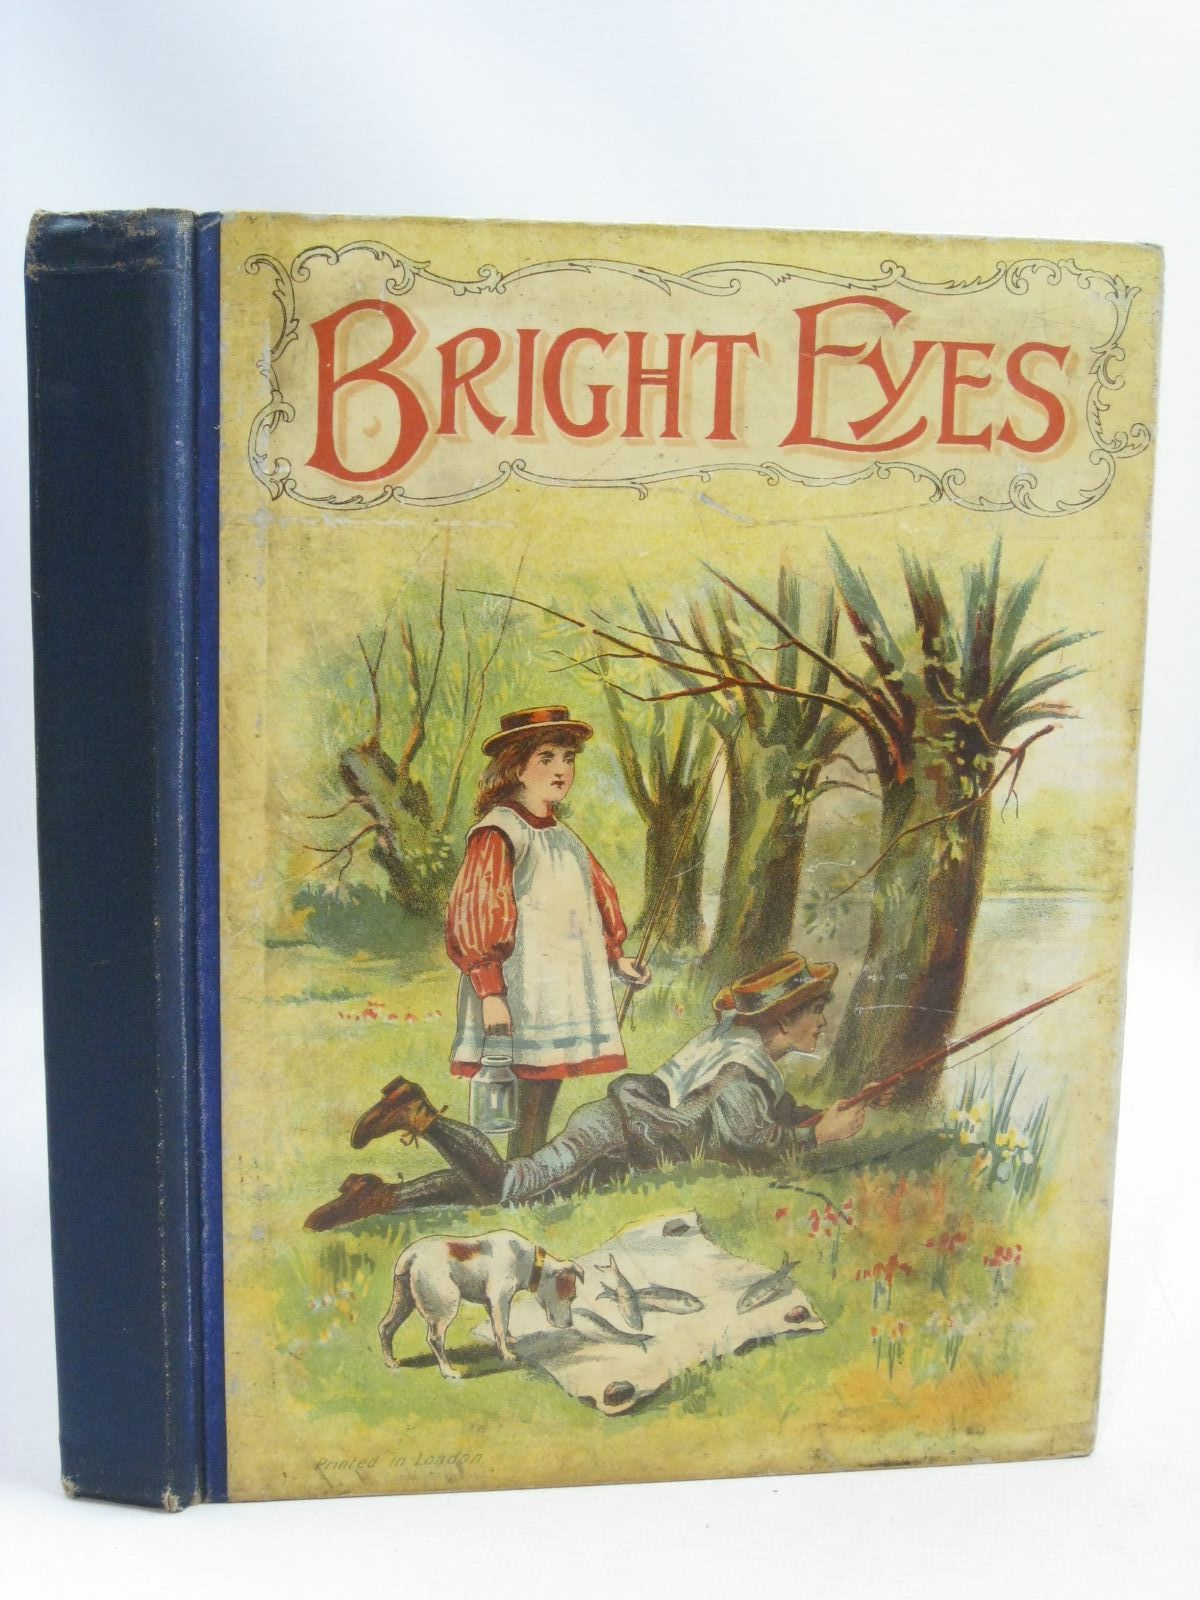 Photo of BRIGHT EYES written by Shorey, Mrs. L. et al, published by George Stoneman (STOCK CODE: 1405339)  for sale by Stella & Rose's Books